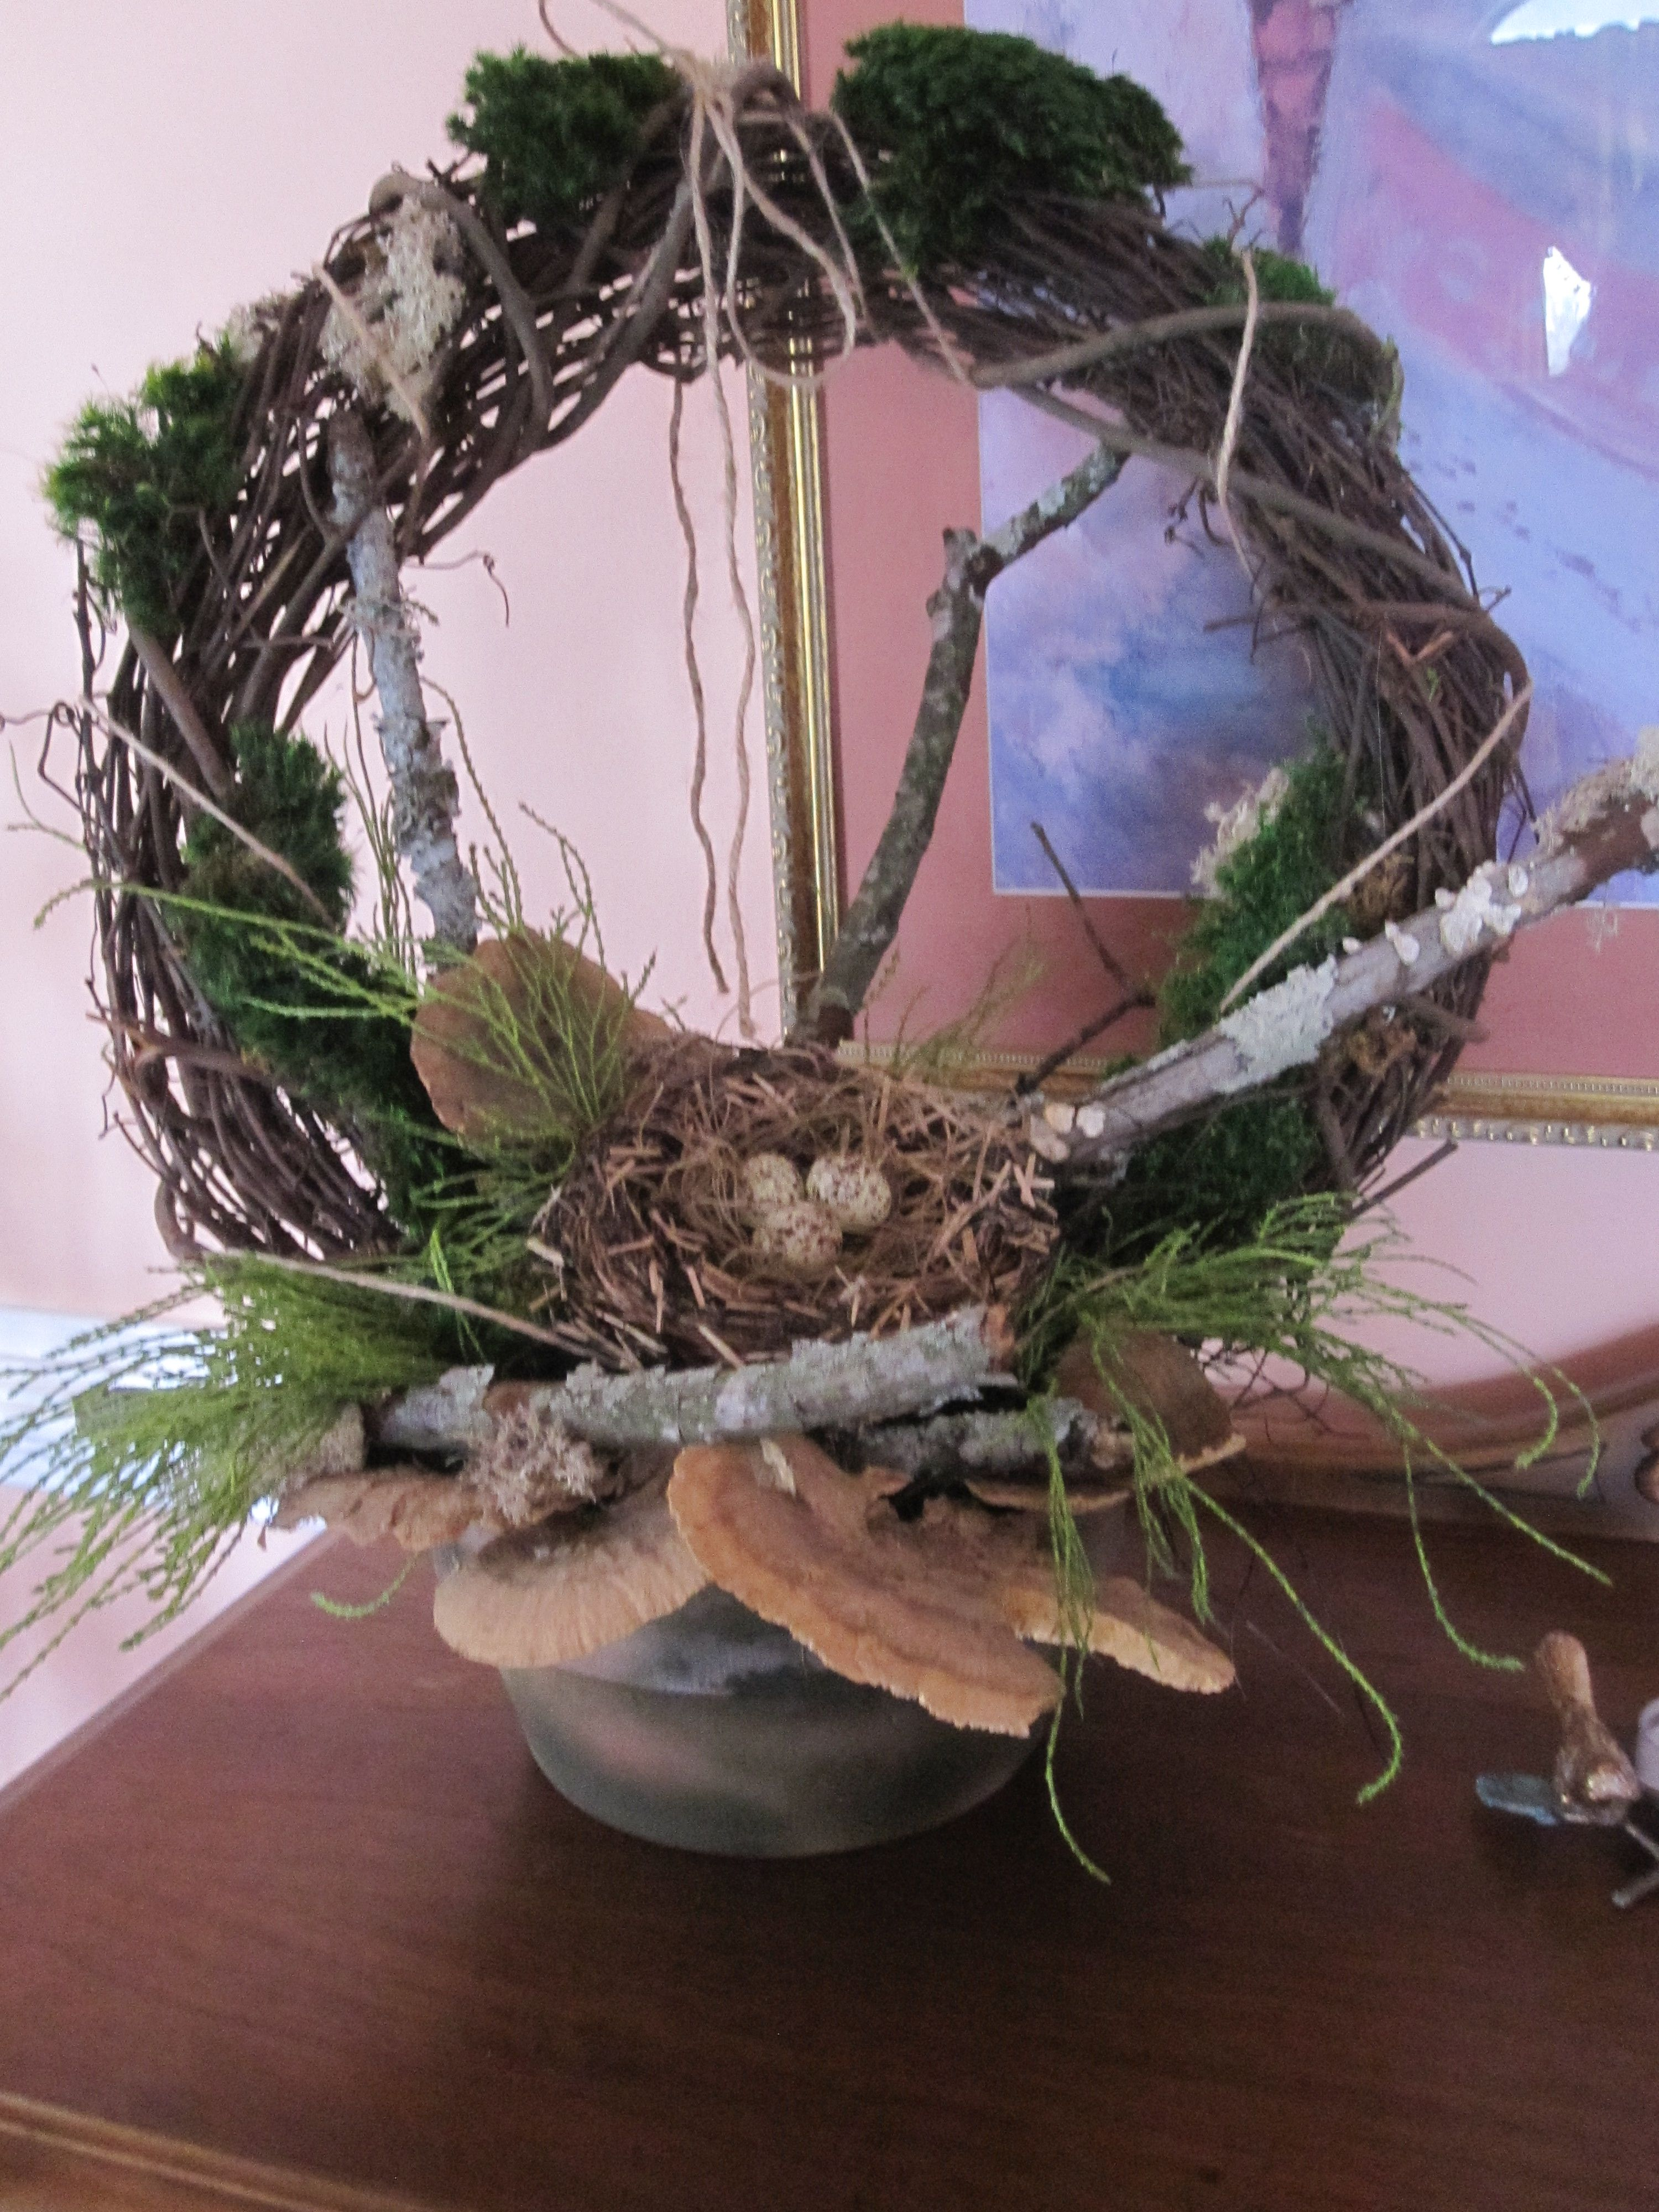 Inspired by bird nests found during late winter pruning. Created by Christine's Creations of Woodstock, GA.